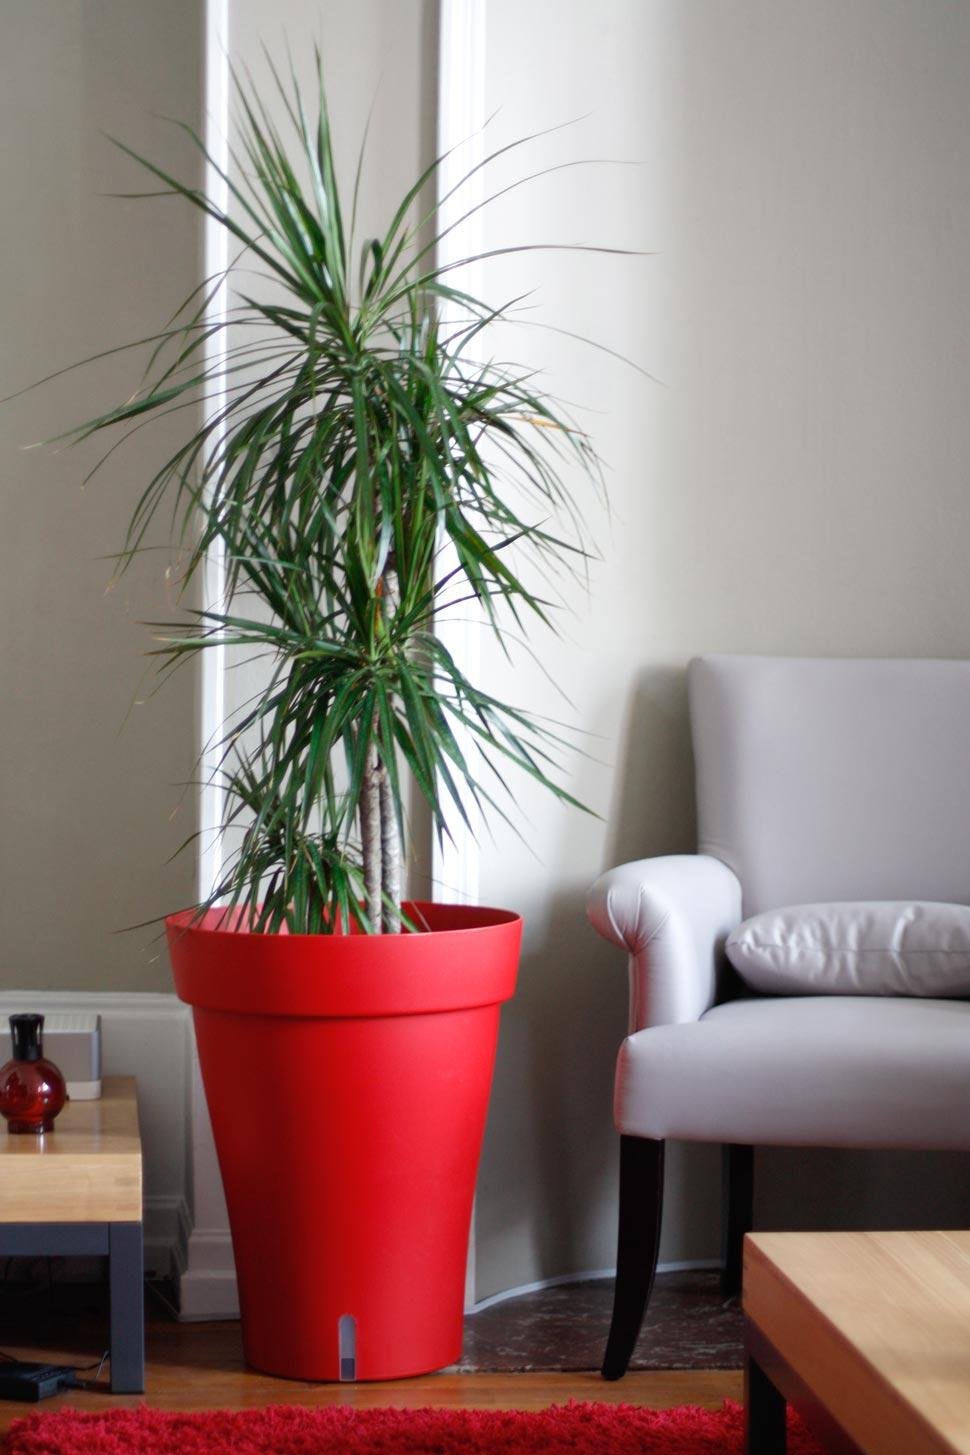 Red vase highlights the colors of the raffia palm